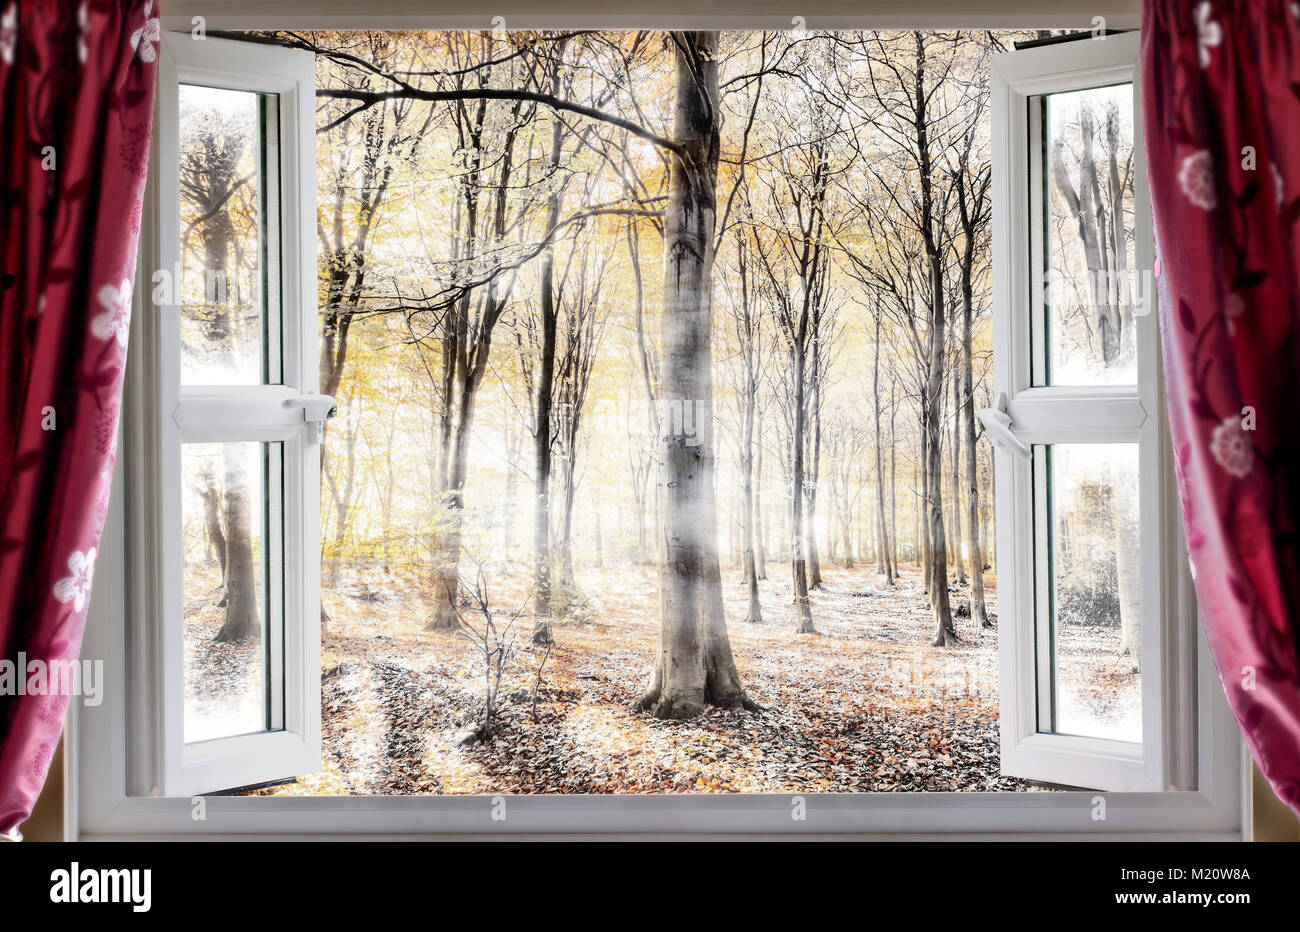 Whispering woodland viewed through an open window with red curtains during a cold autumn morning. Mist and fog slowly - Stock Image